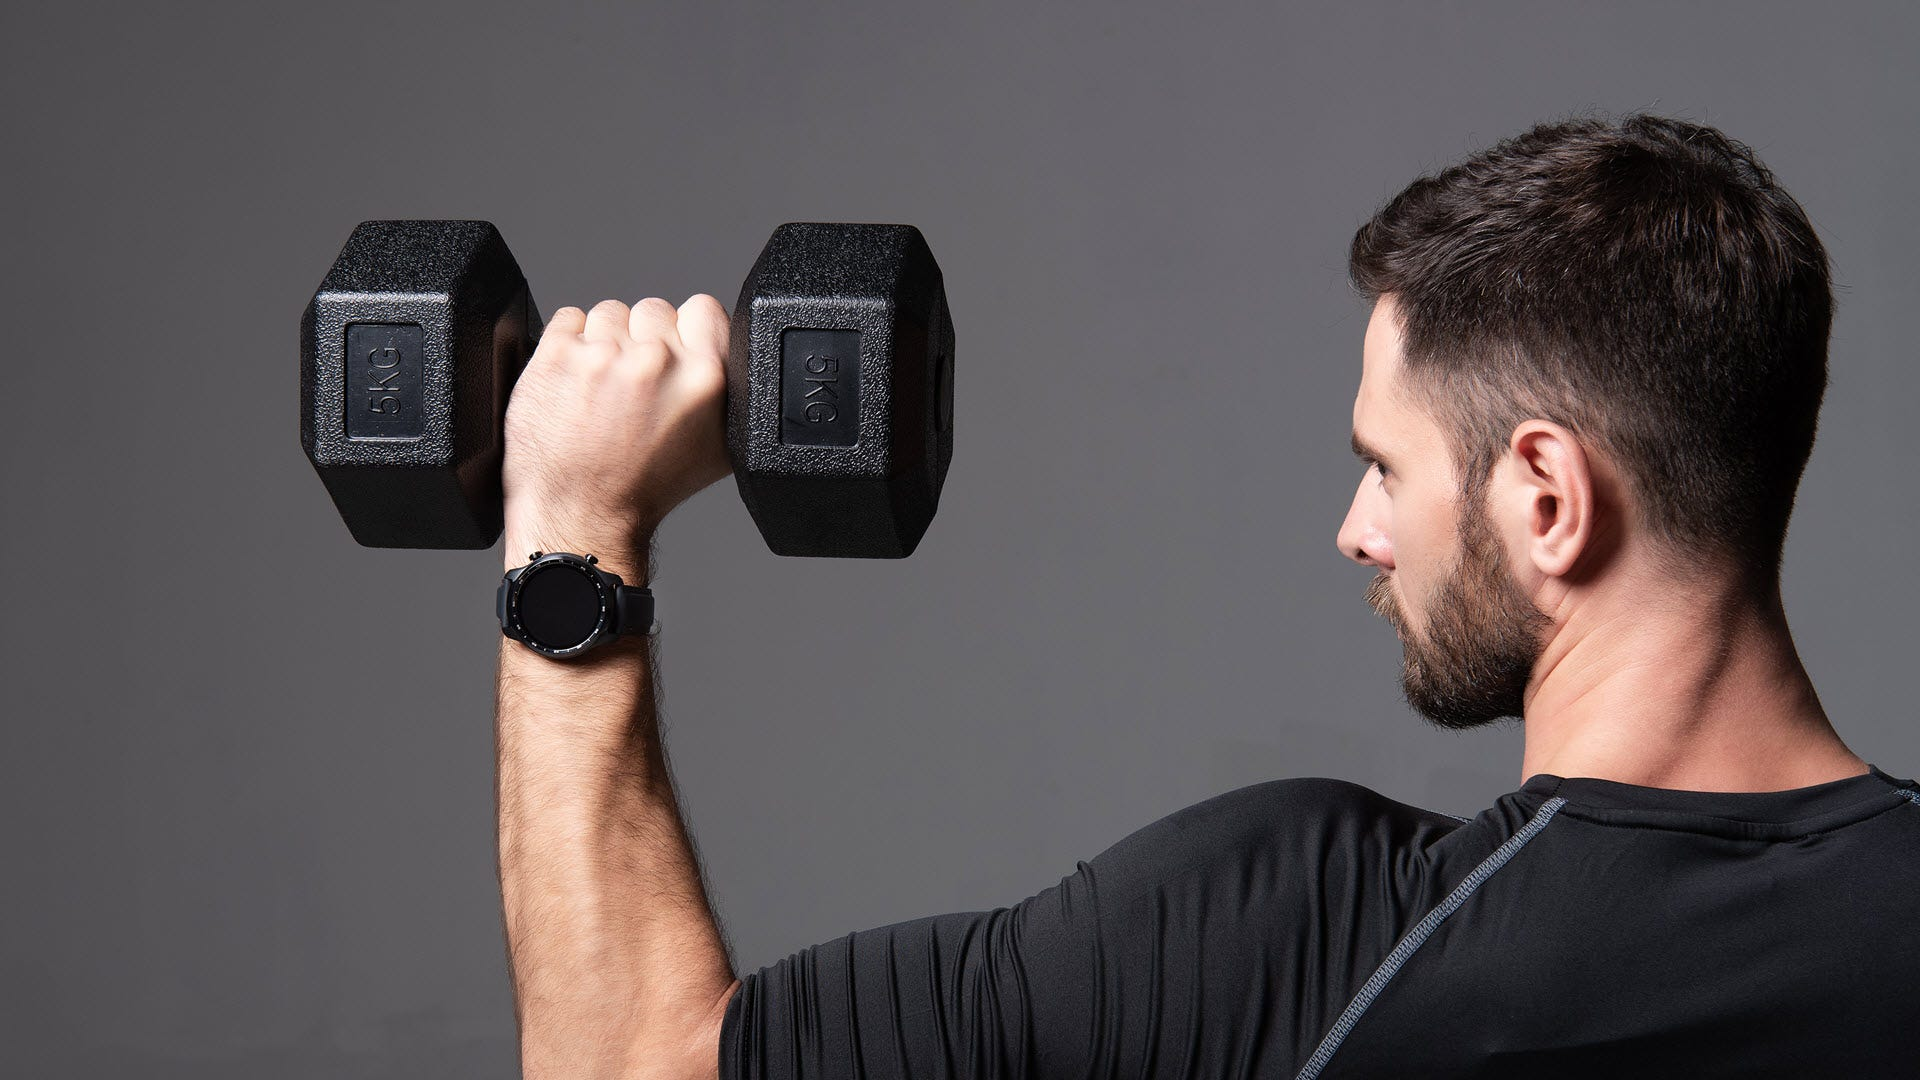 A man lifting weights while wearing a smartwatch.